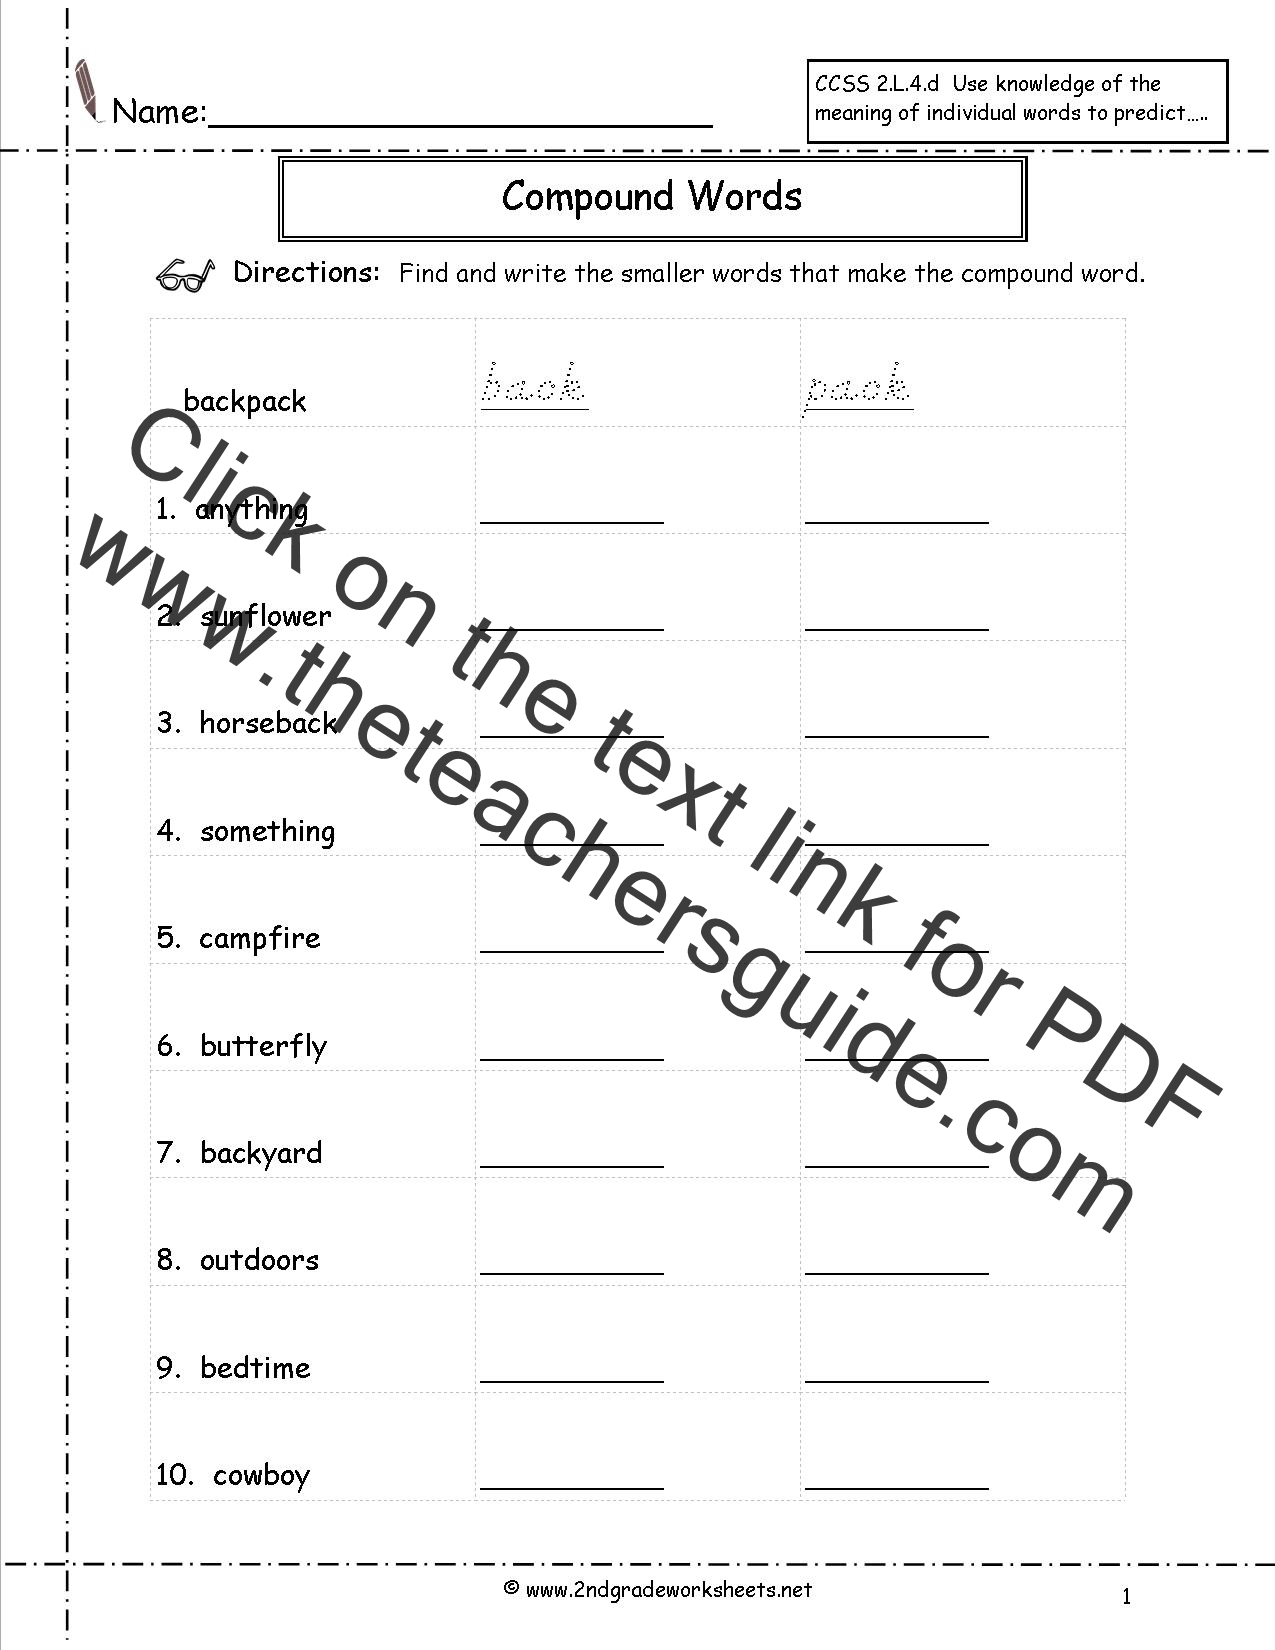 Free Worksheet Free Second Grade Language Arts Worksheets free languagegrammar worksheets and printouts compound words worksheets